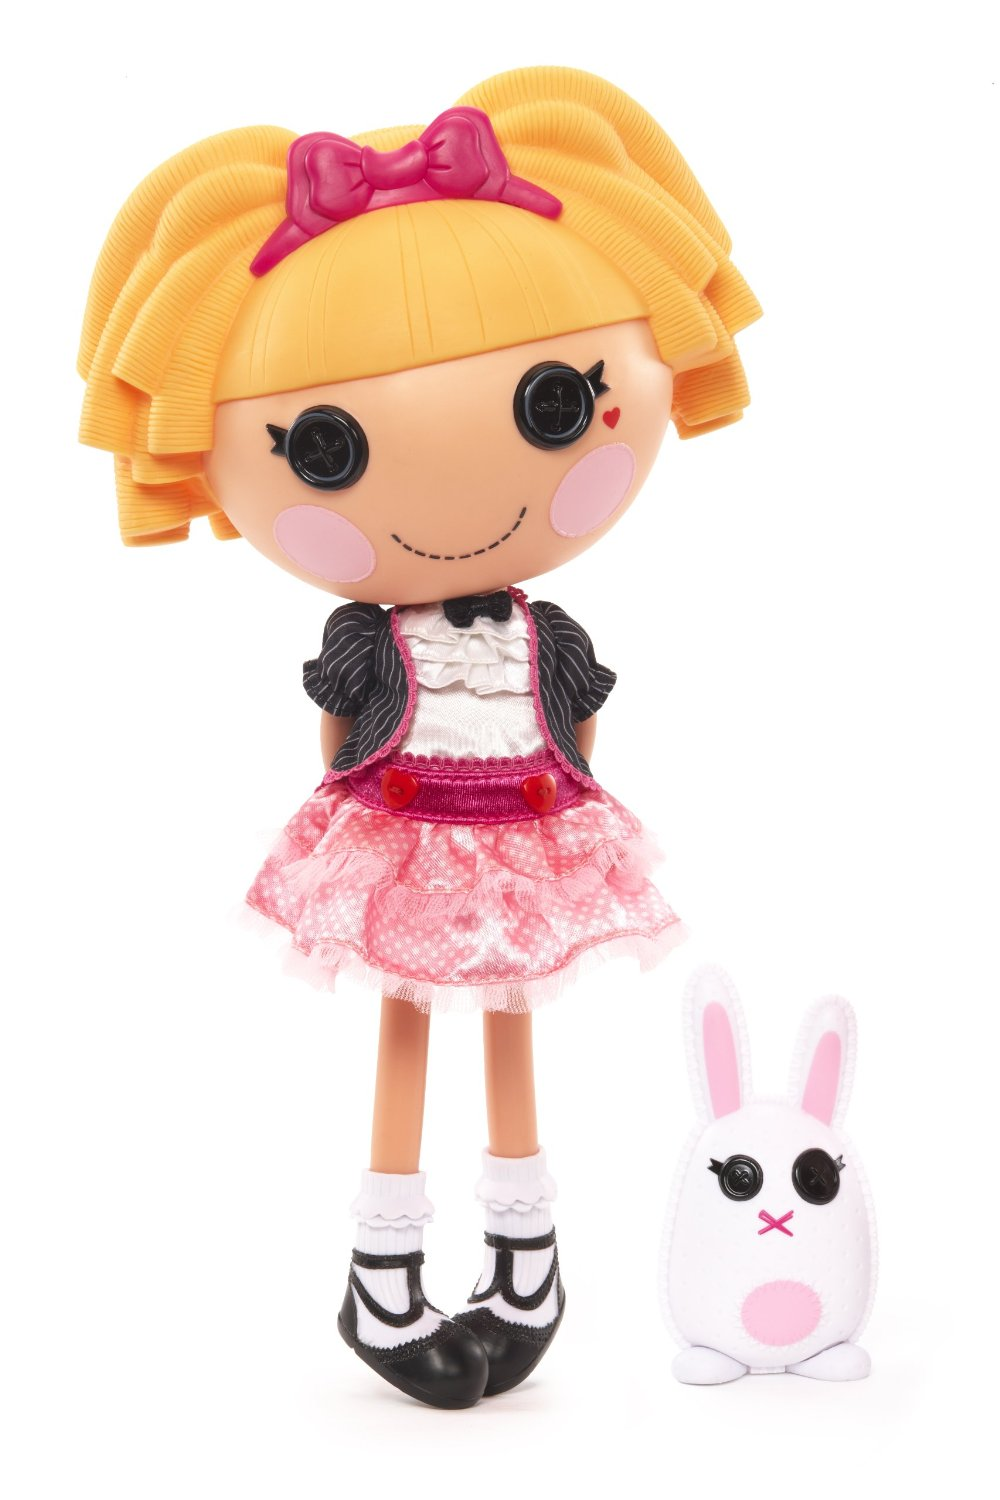 Lalaloopsy Toy Food : Misty mysterious lalaloopsy land wiki fandom powered